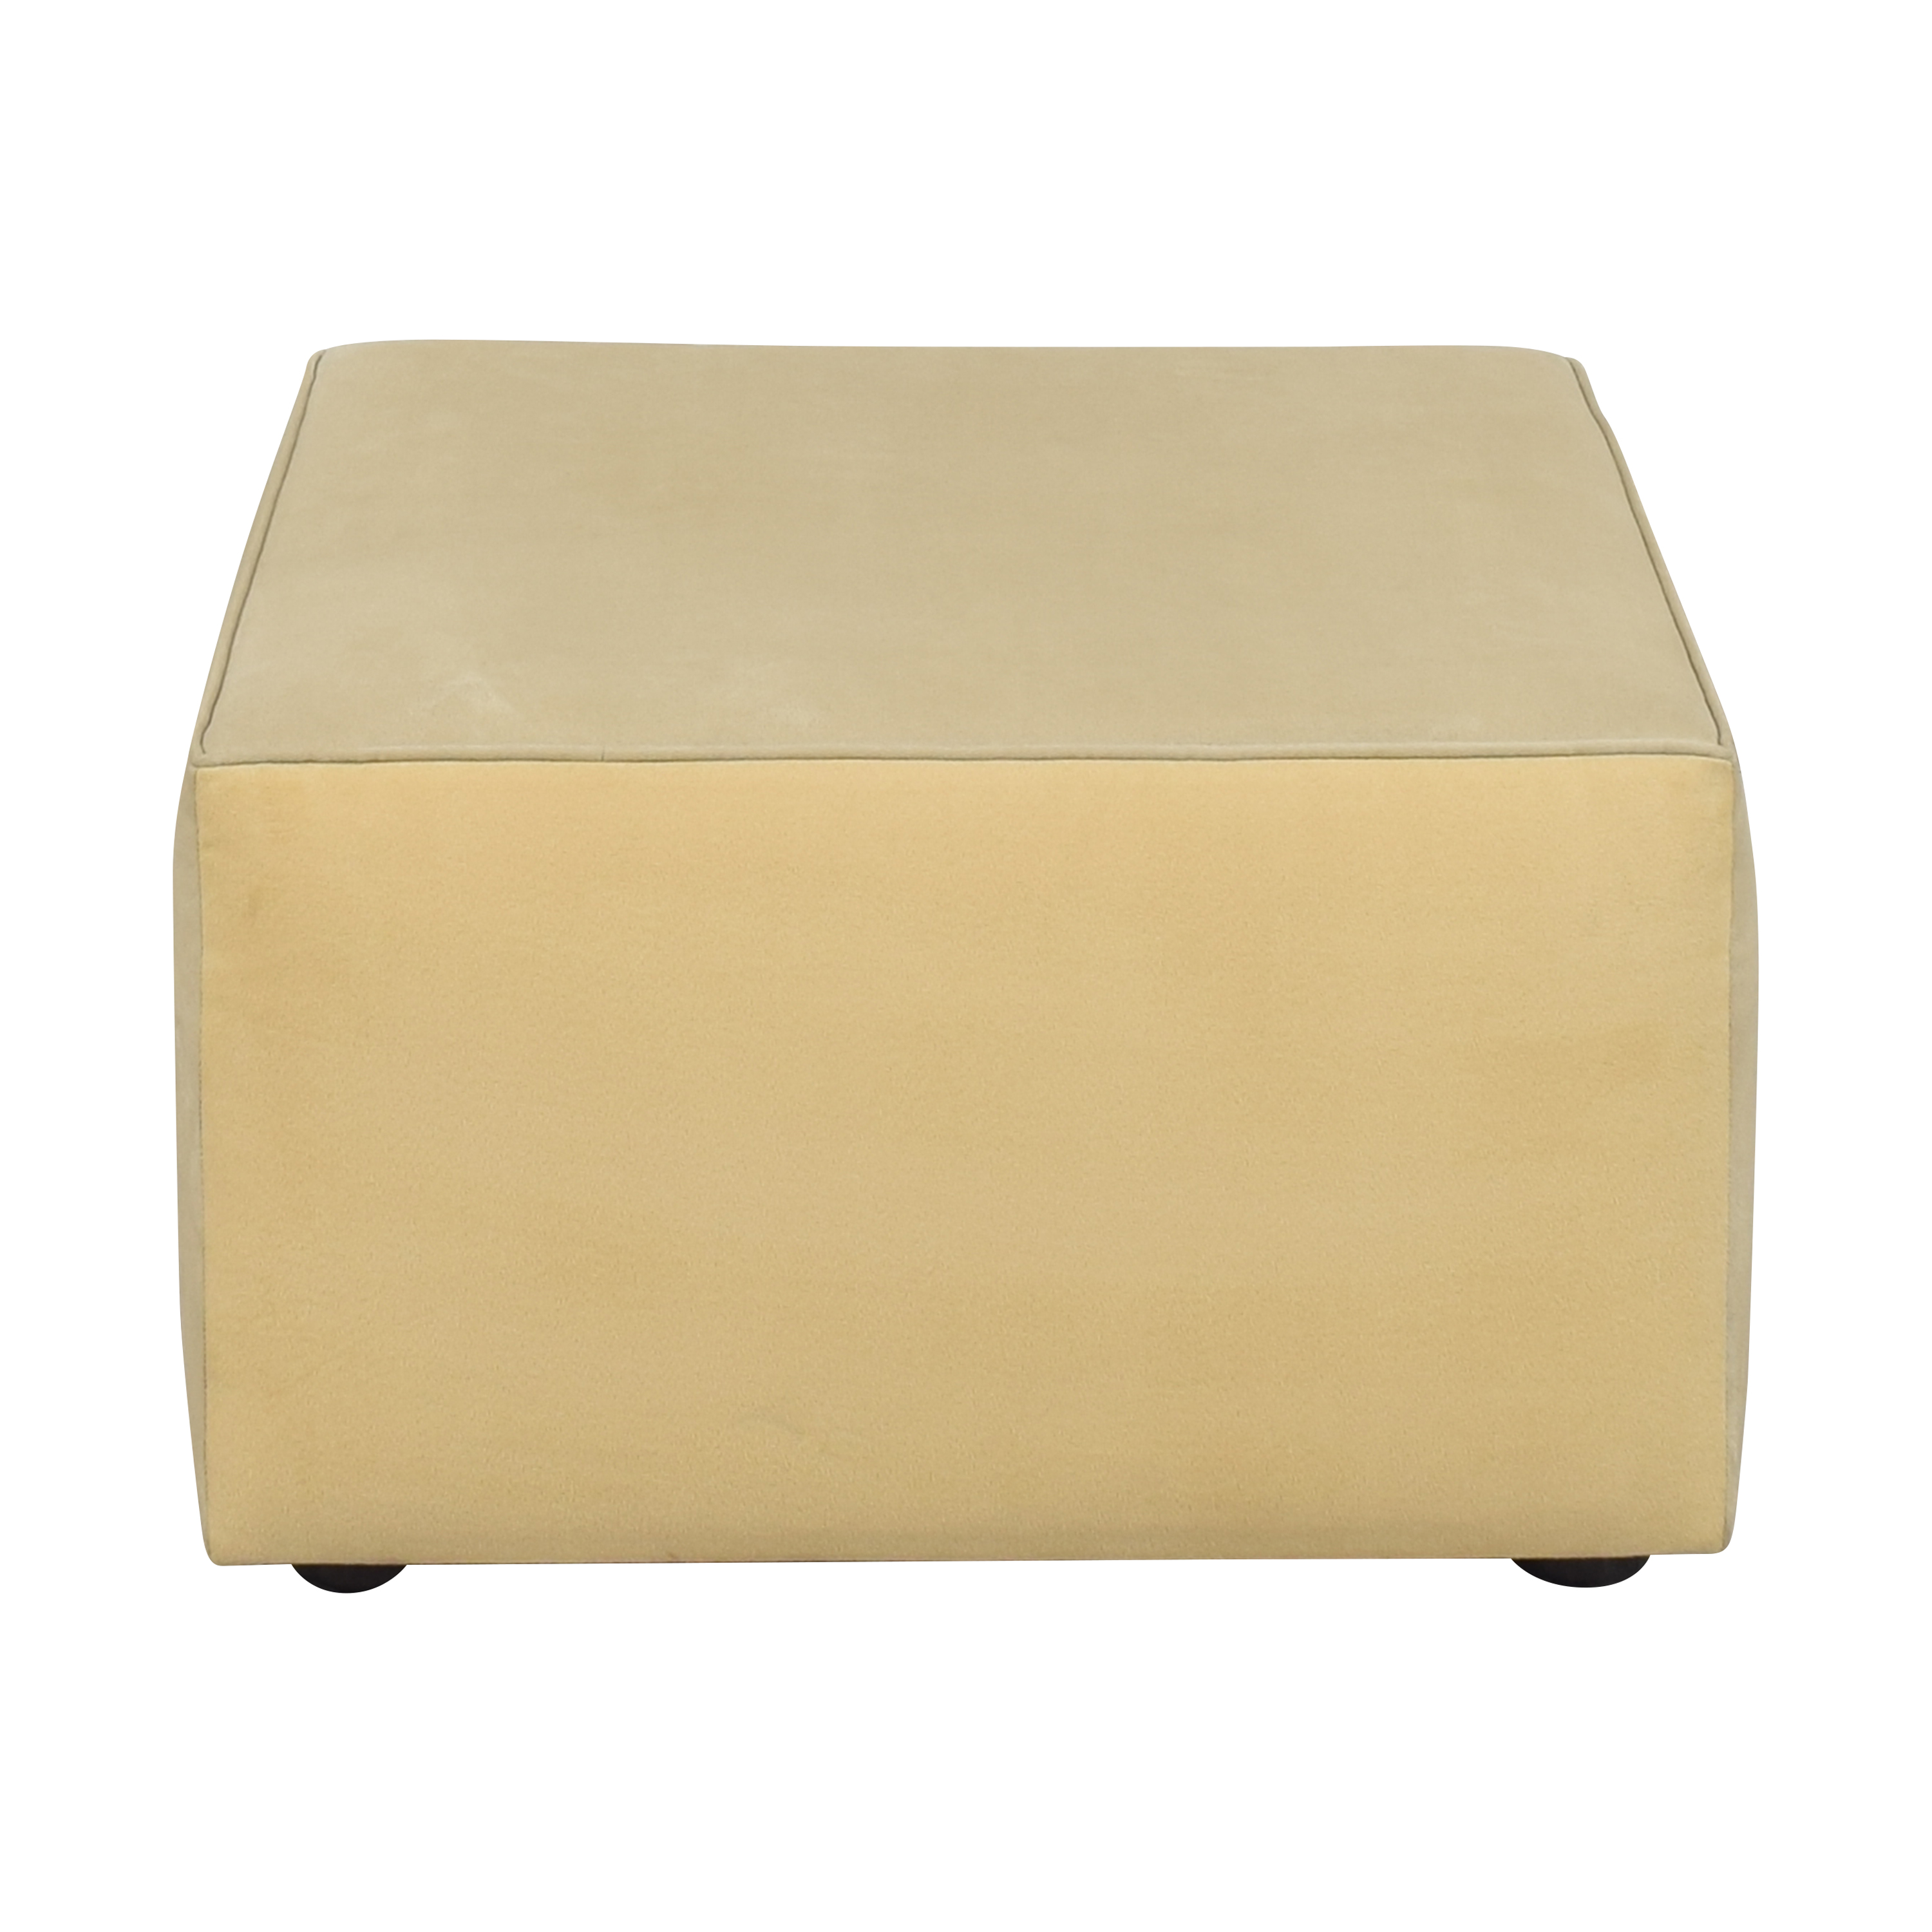 buy  Modern Square Ottoman online